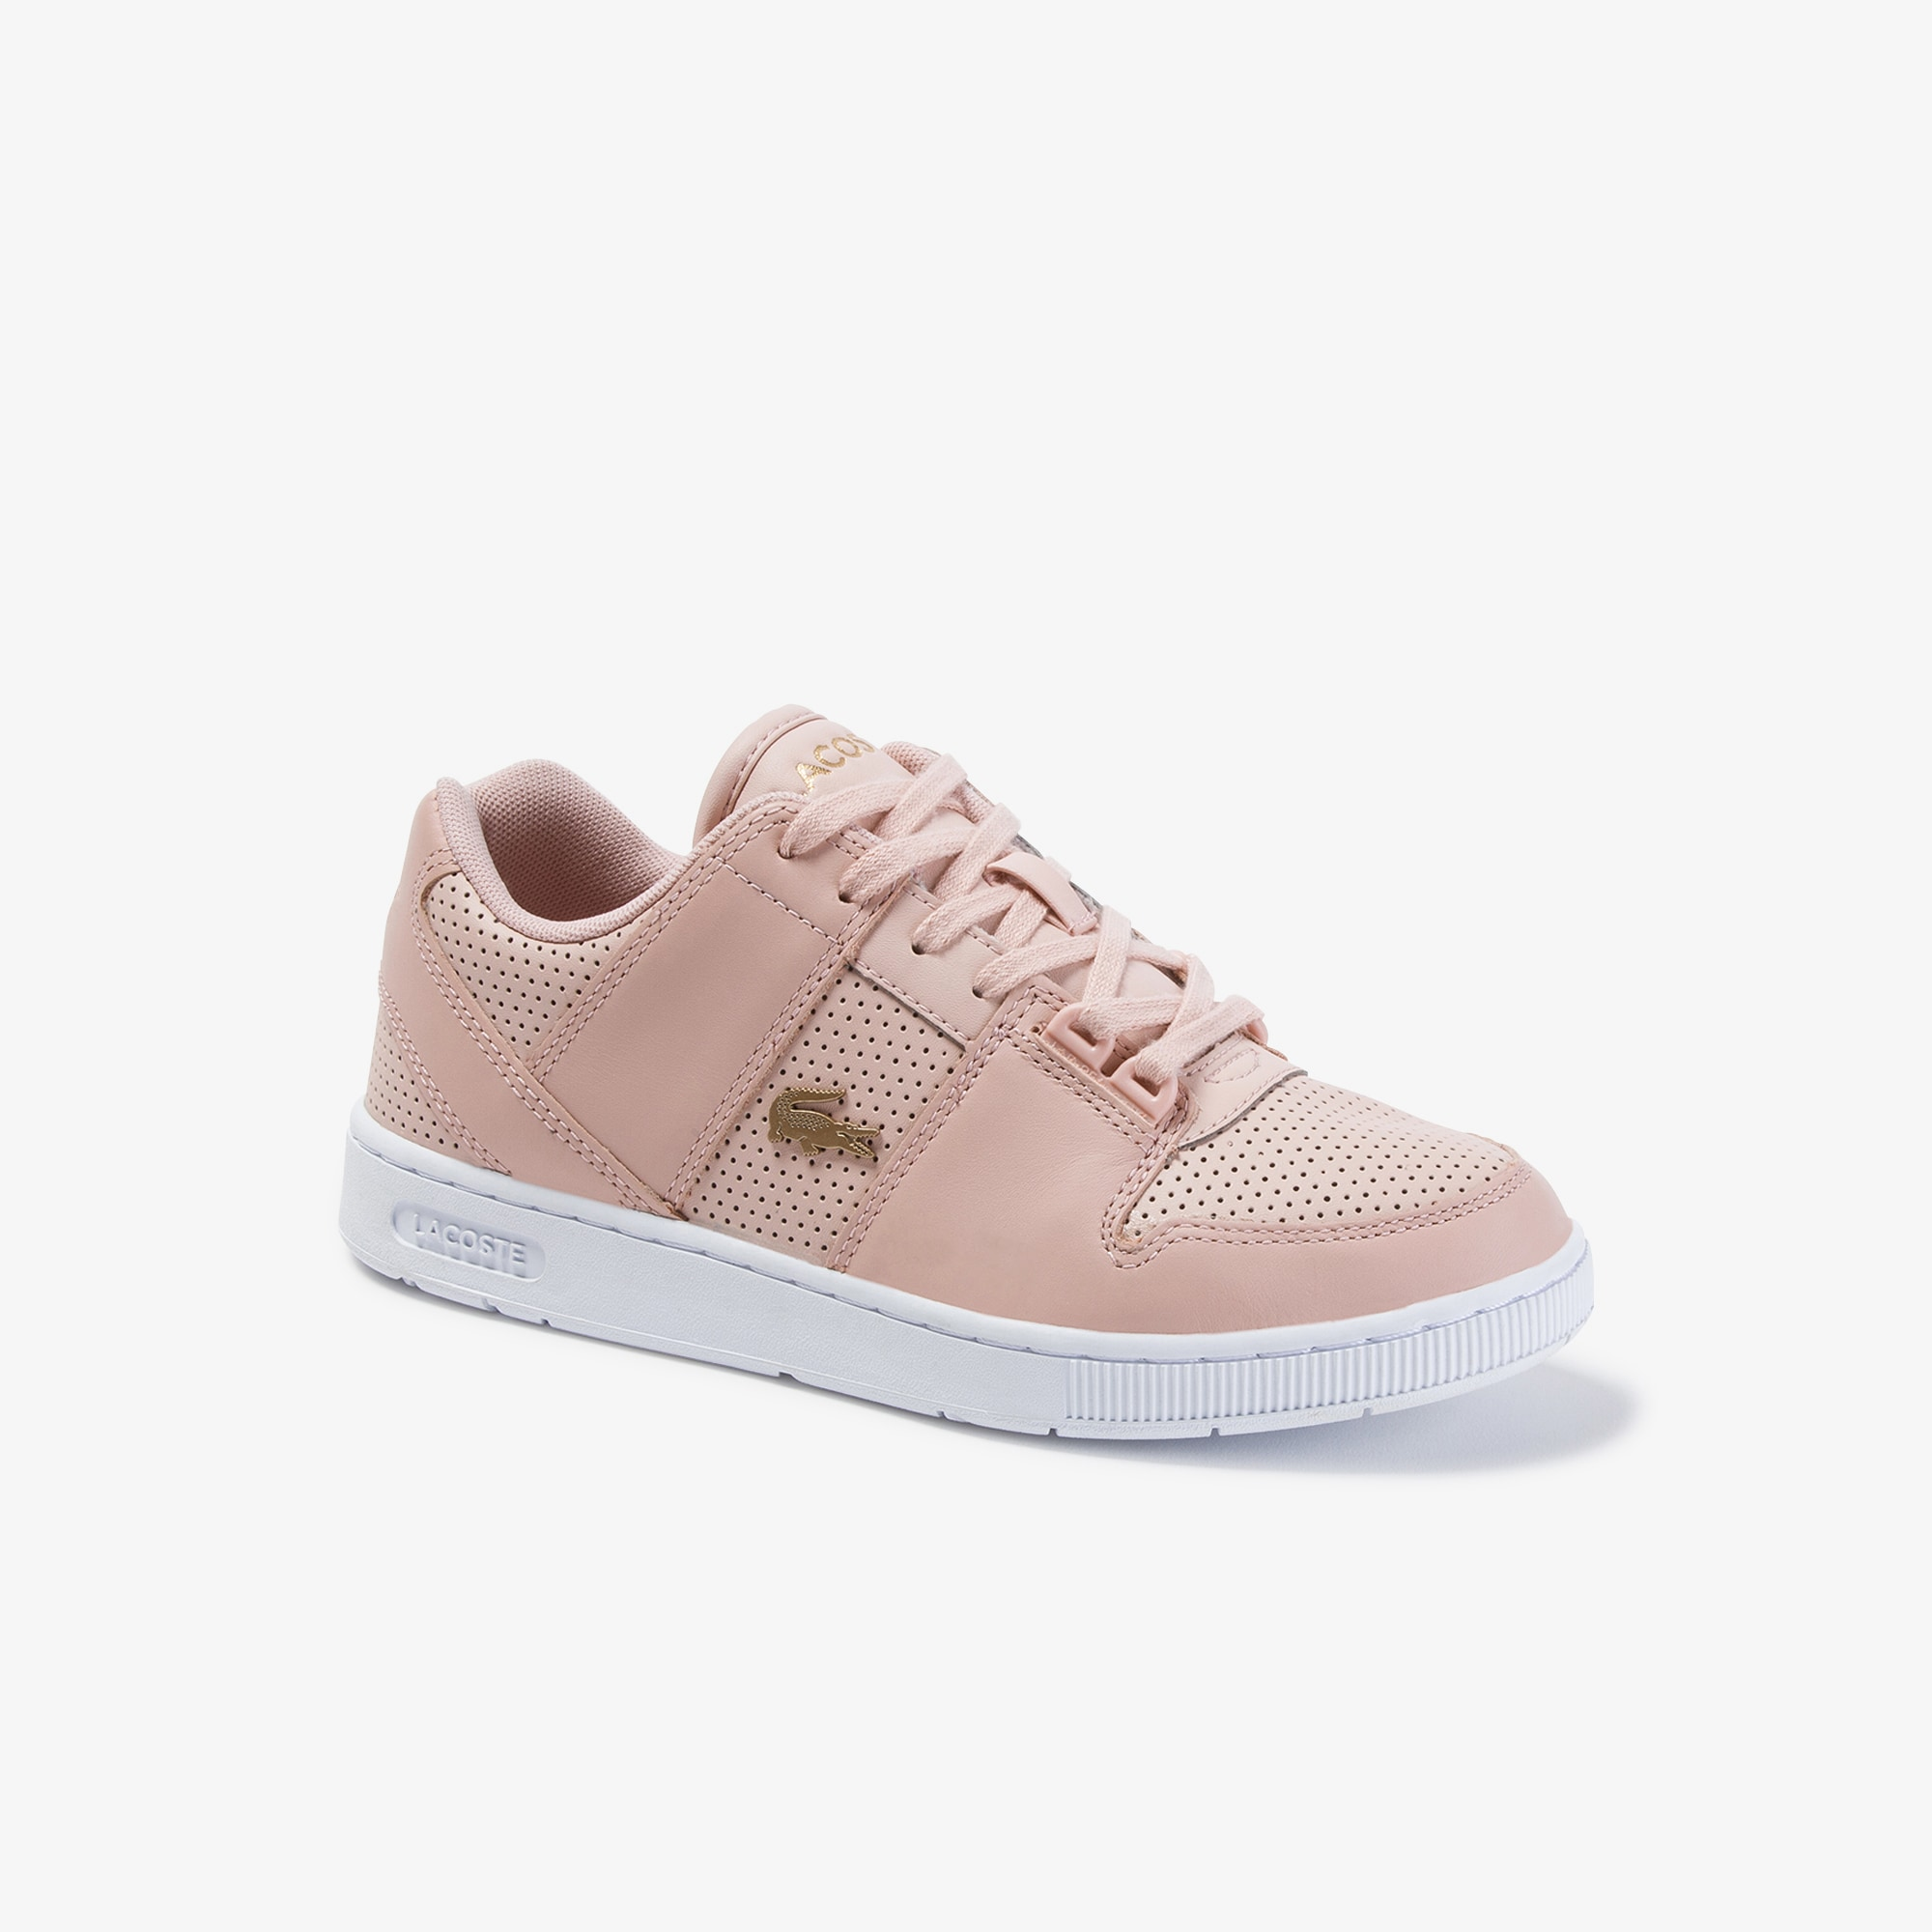 Damen-Sneakers THRILL aus Leder und Synthetik